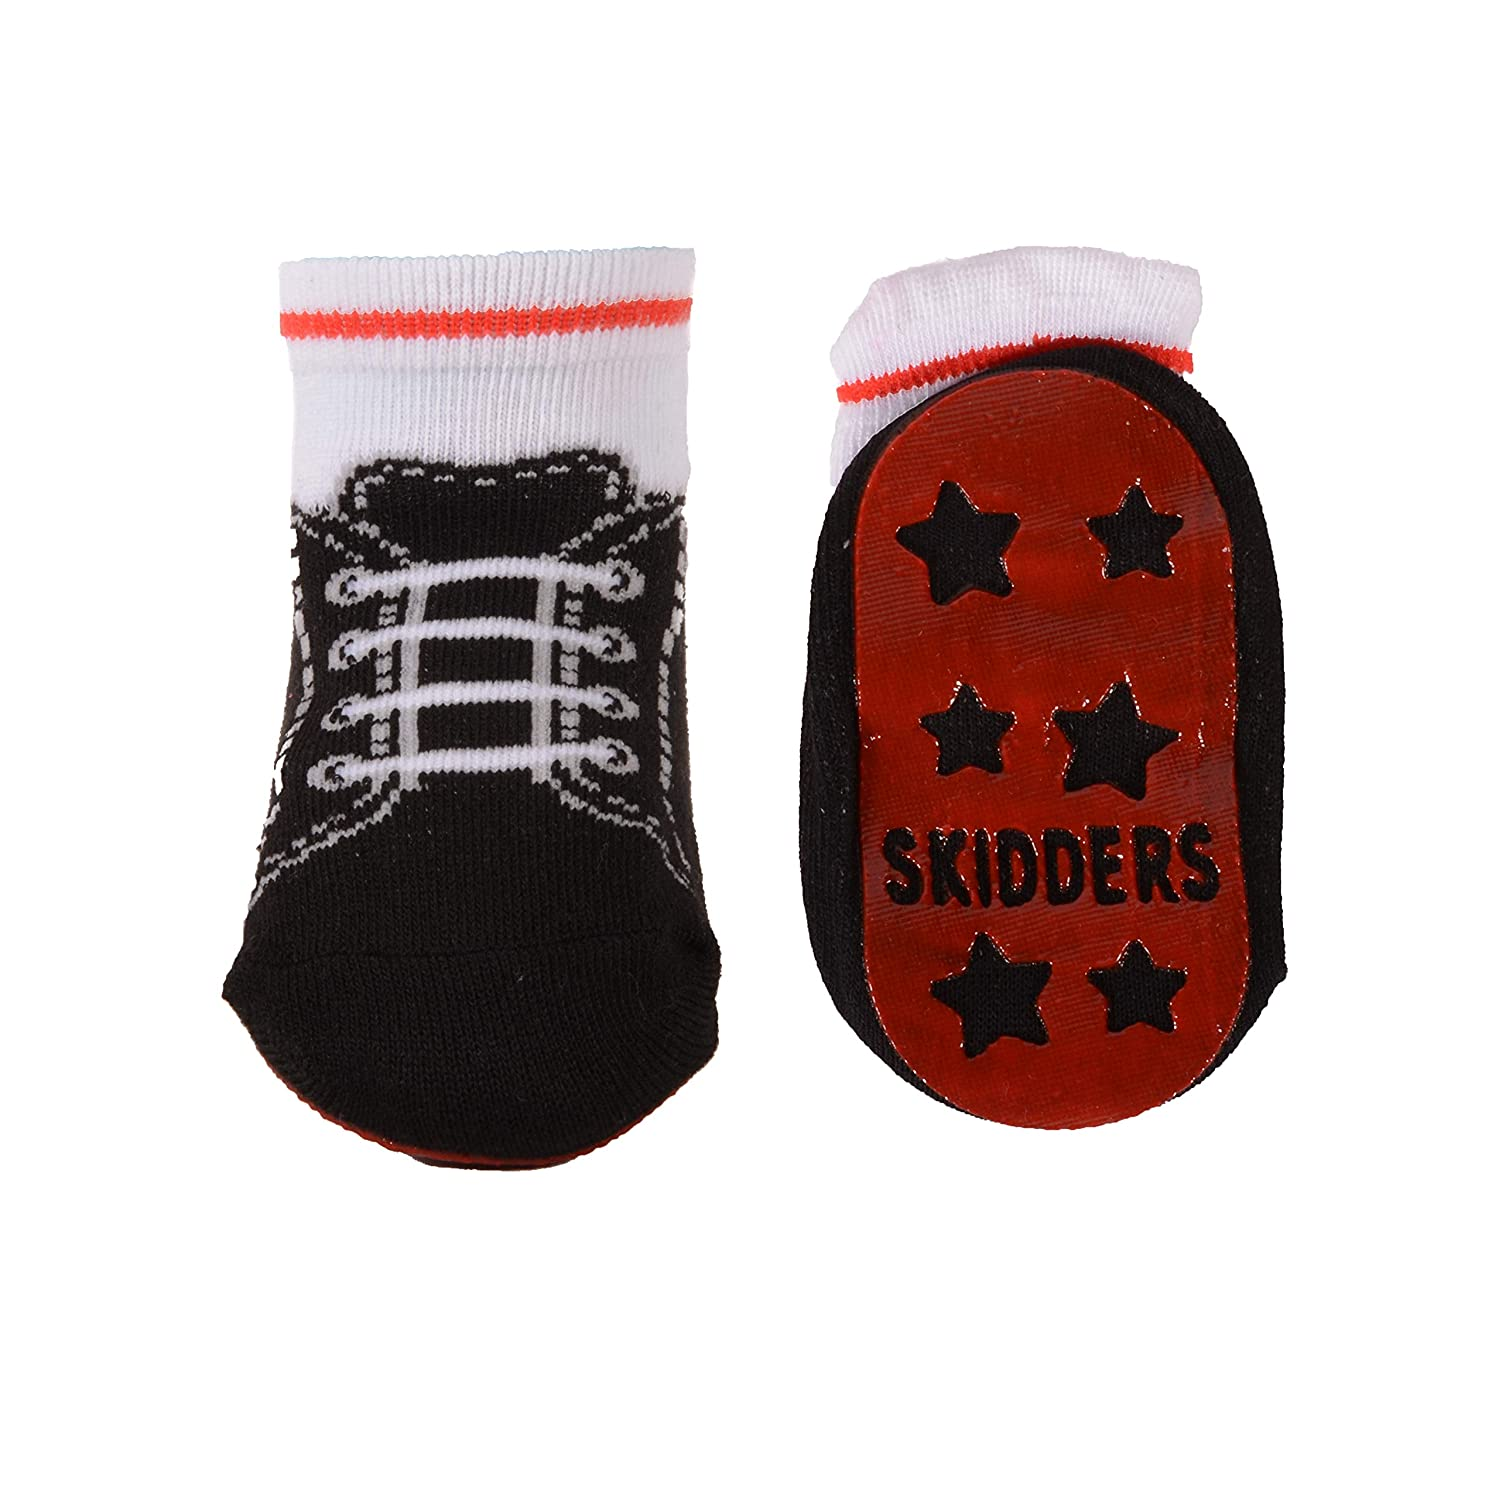 SKIDDERS Baby Toddler Boys Grip Socks Style 1141BF